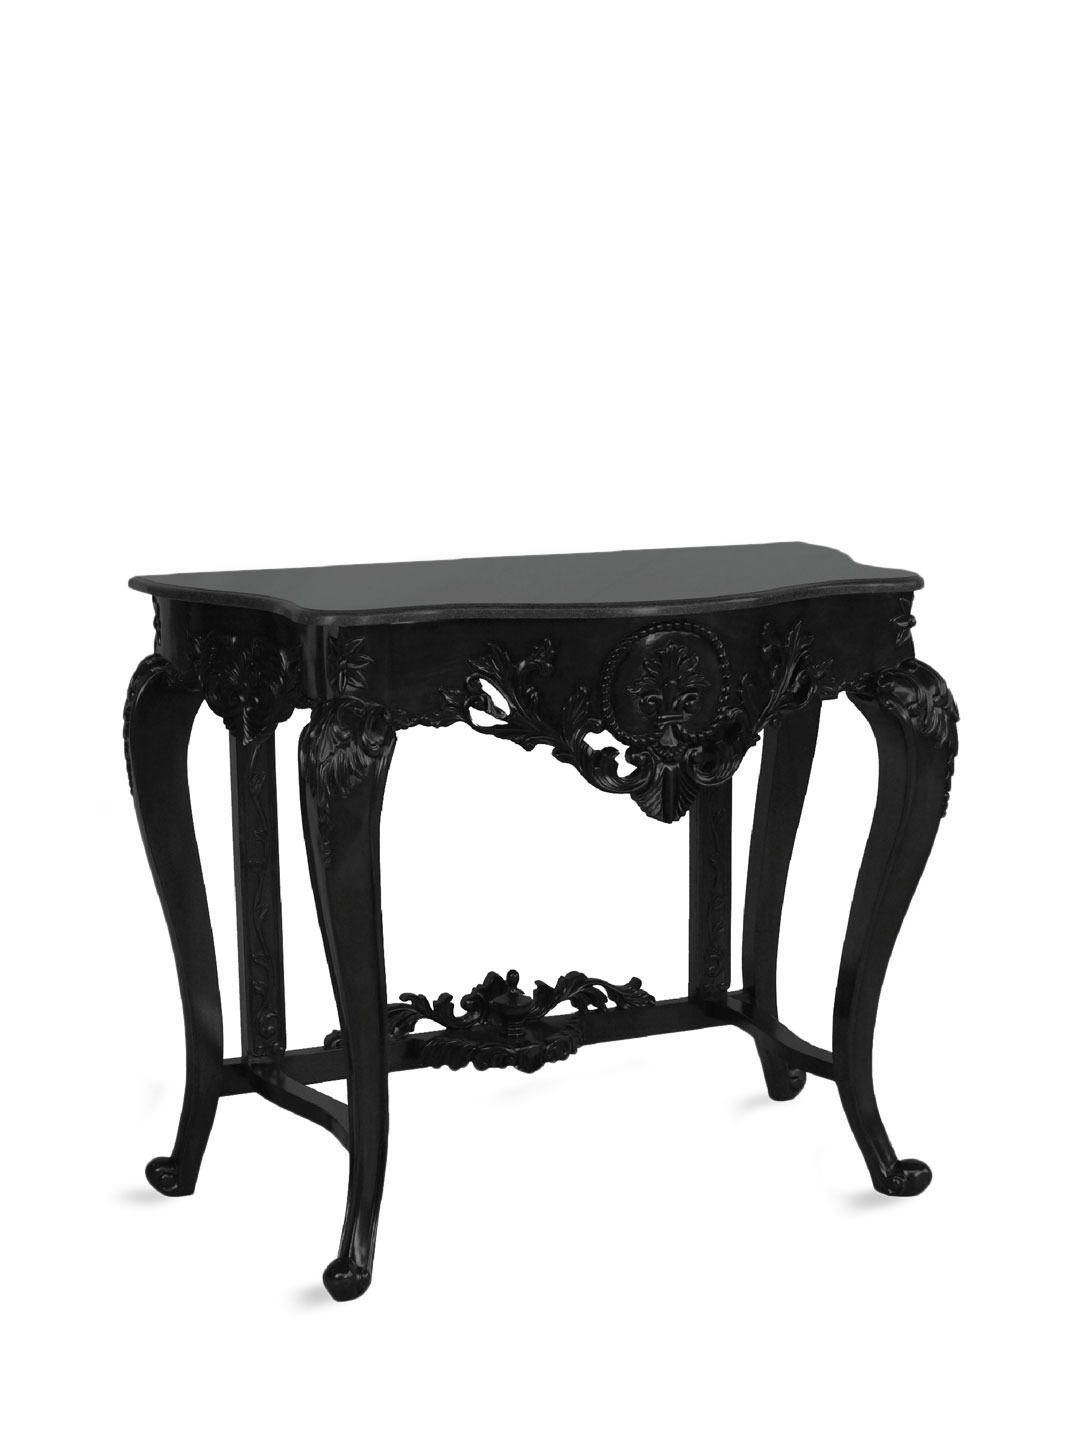 fabulous and baroque lancelot console table dreamhome accent raton furniture high top metal glass patio homemade coffee designs small round drink covers canadian tire porch set